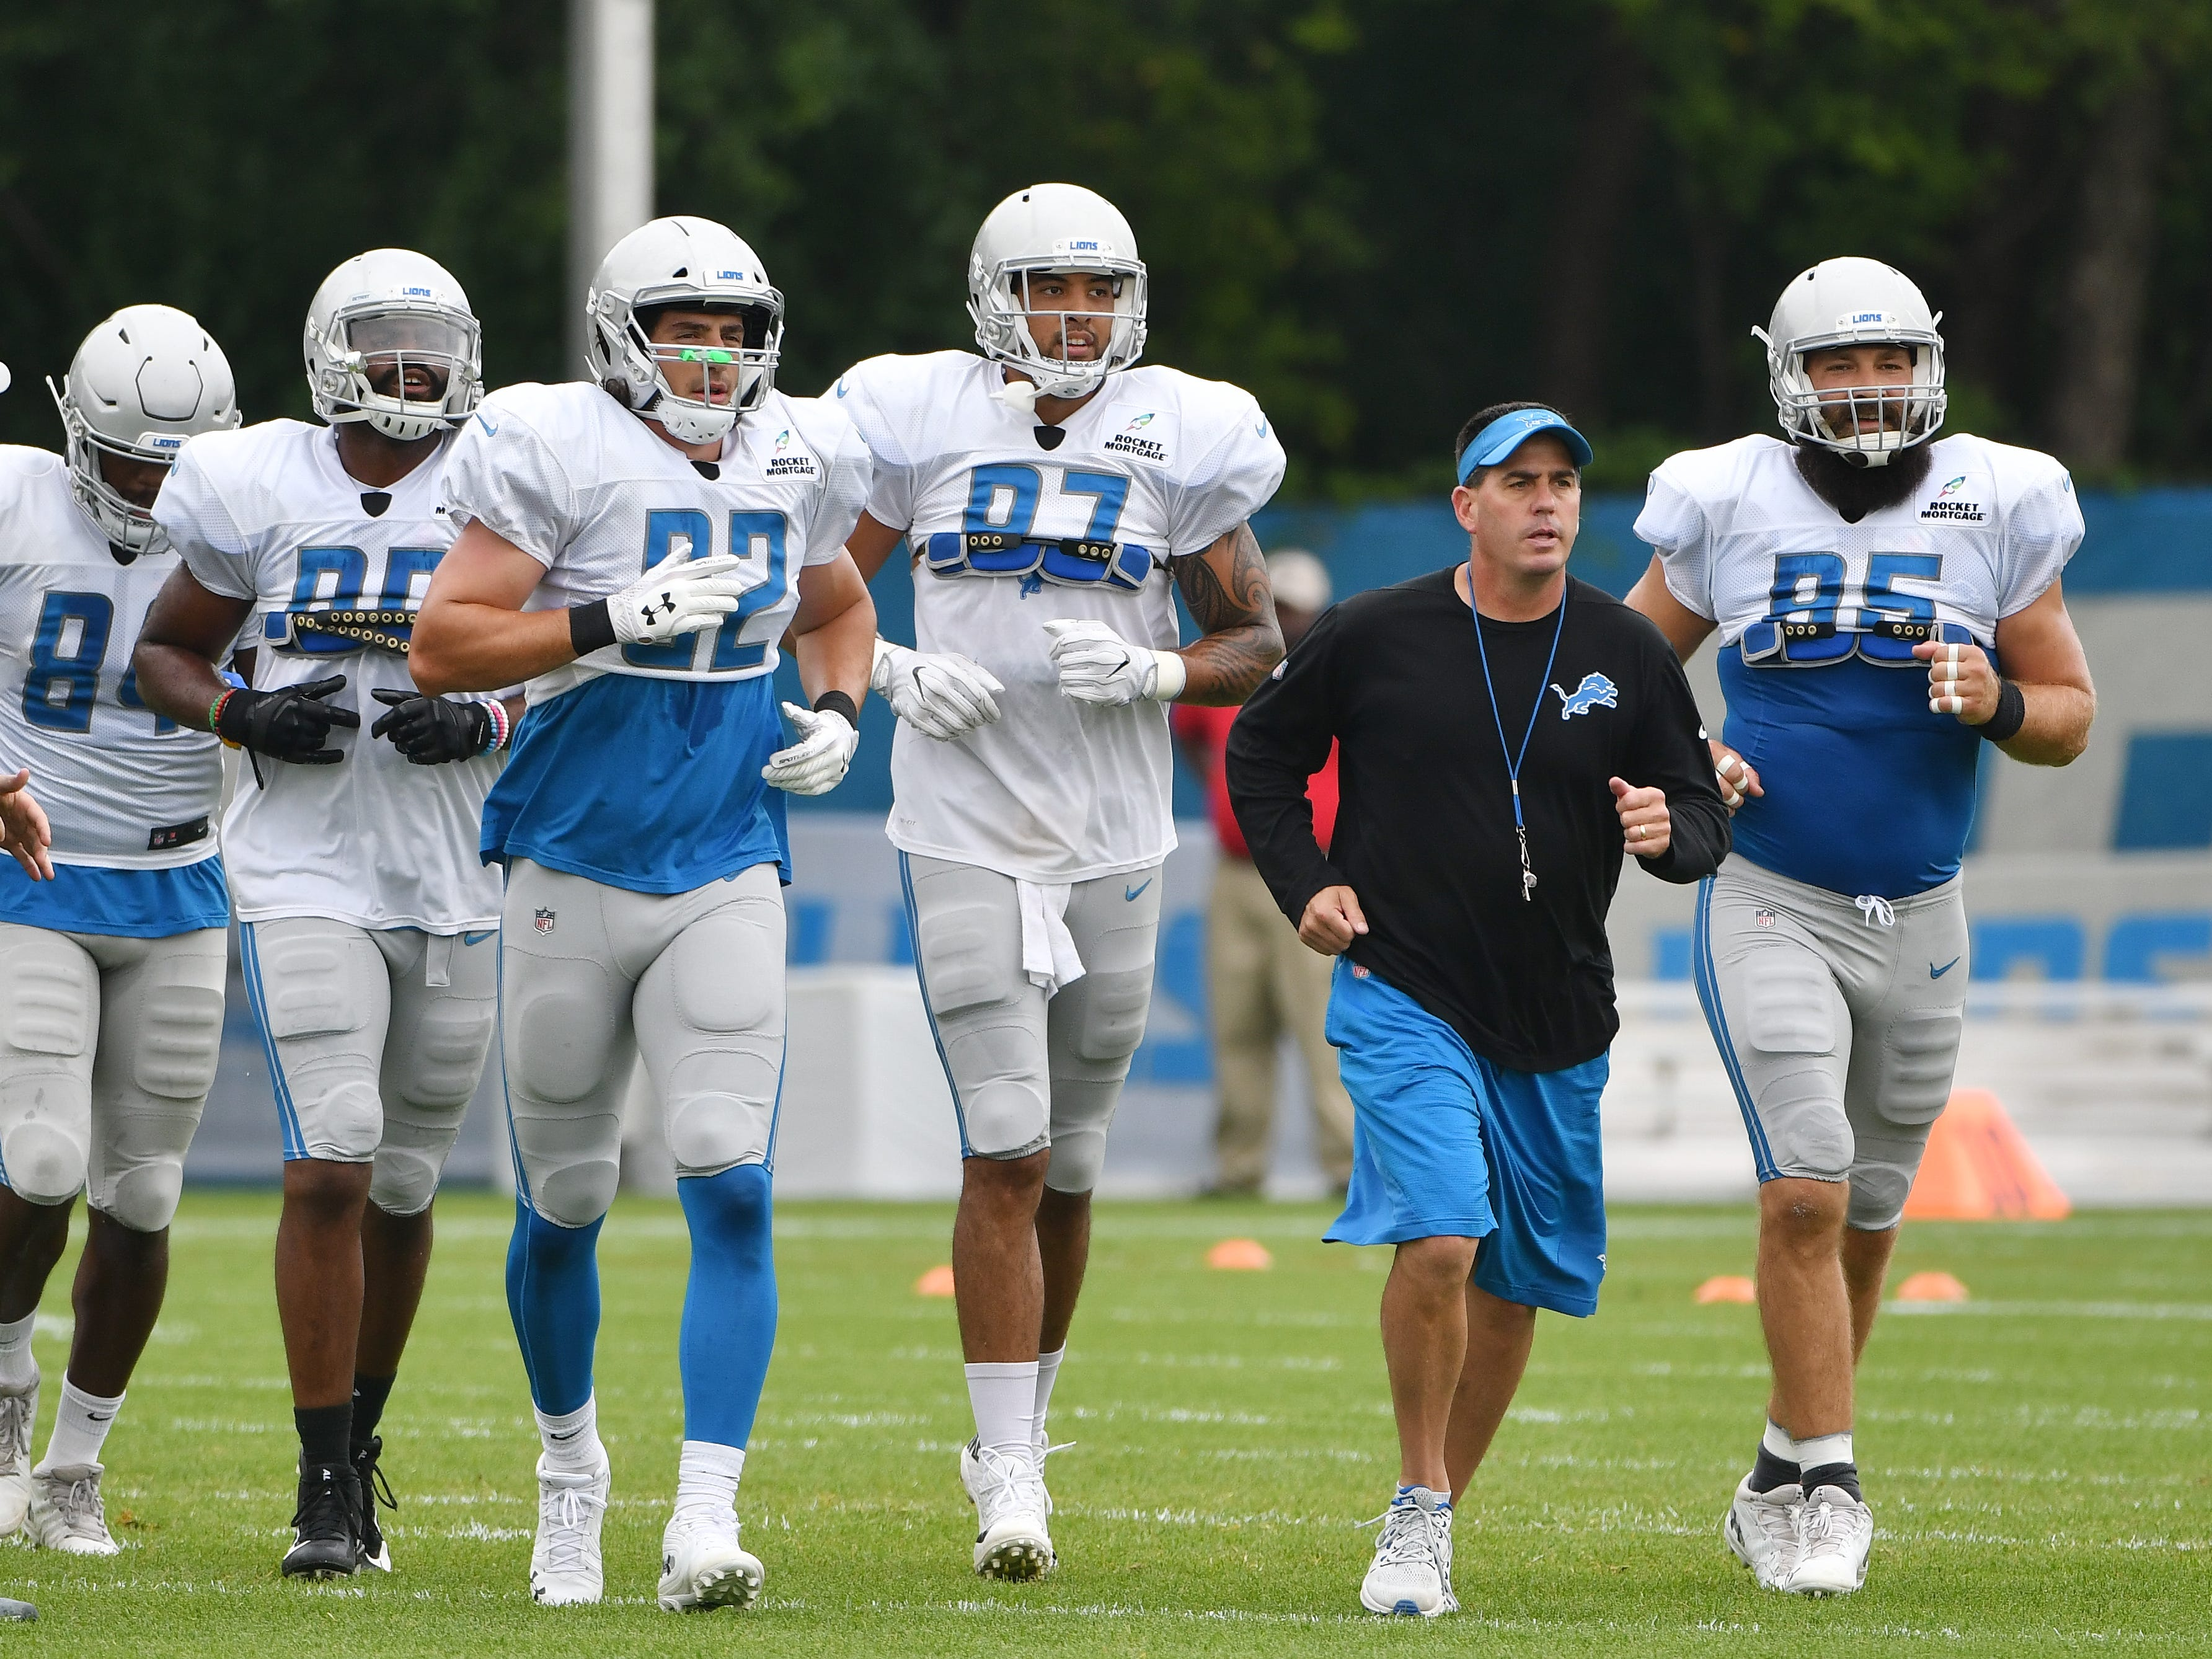 Lions tight end coach Chris White and his players head over to the next drill.